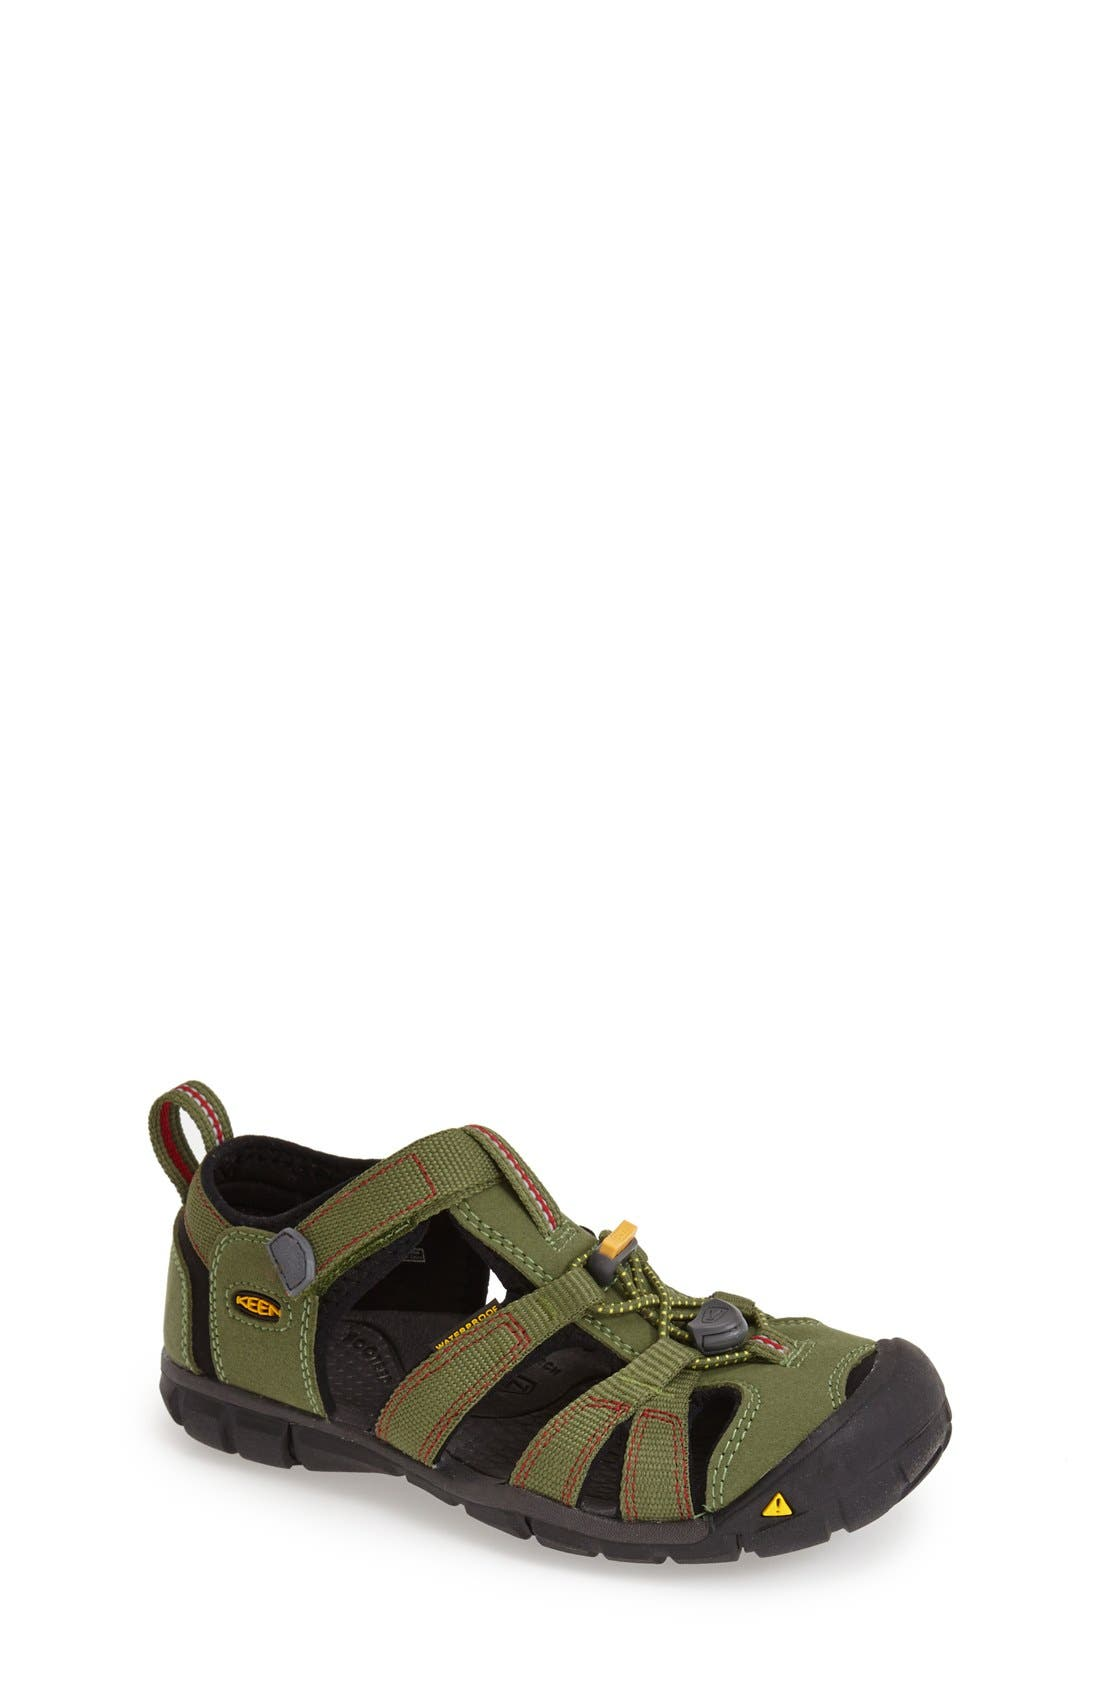 Main Image - Keen 'Seacamp II' Waterproof Sandal (Baby, Walker, Toddler, Little Kid & Big Kid)